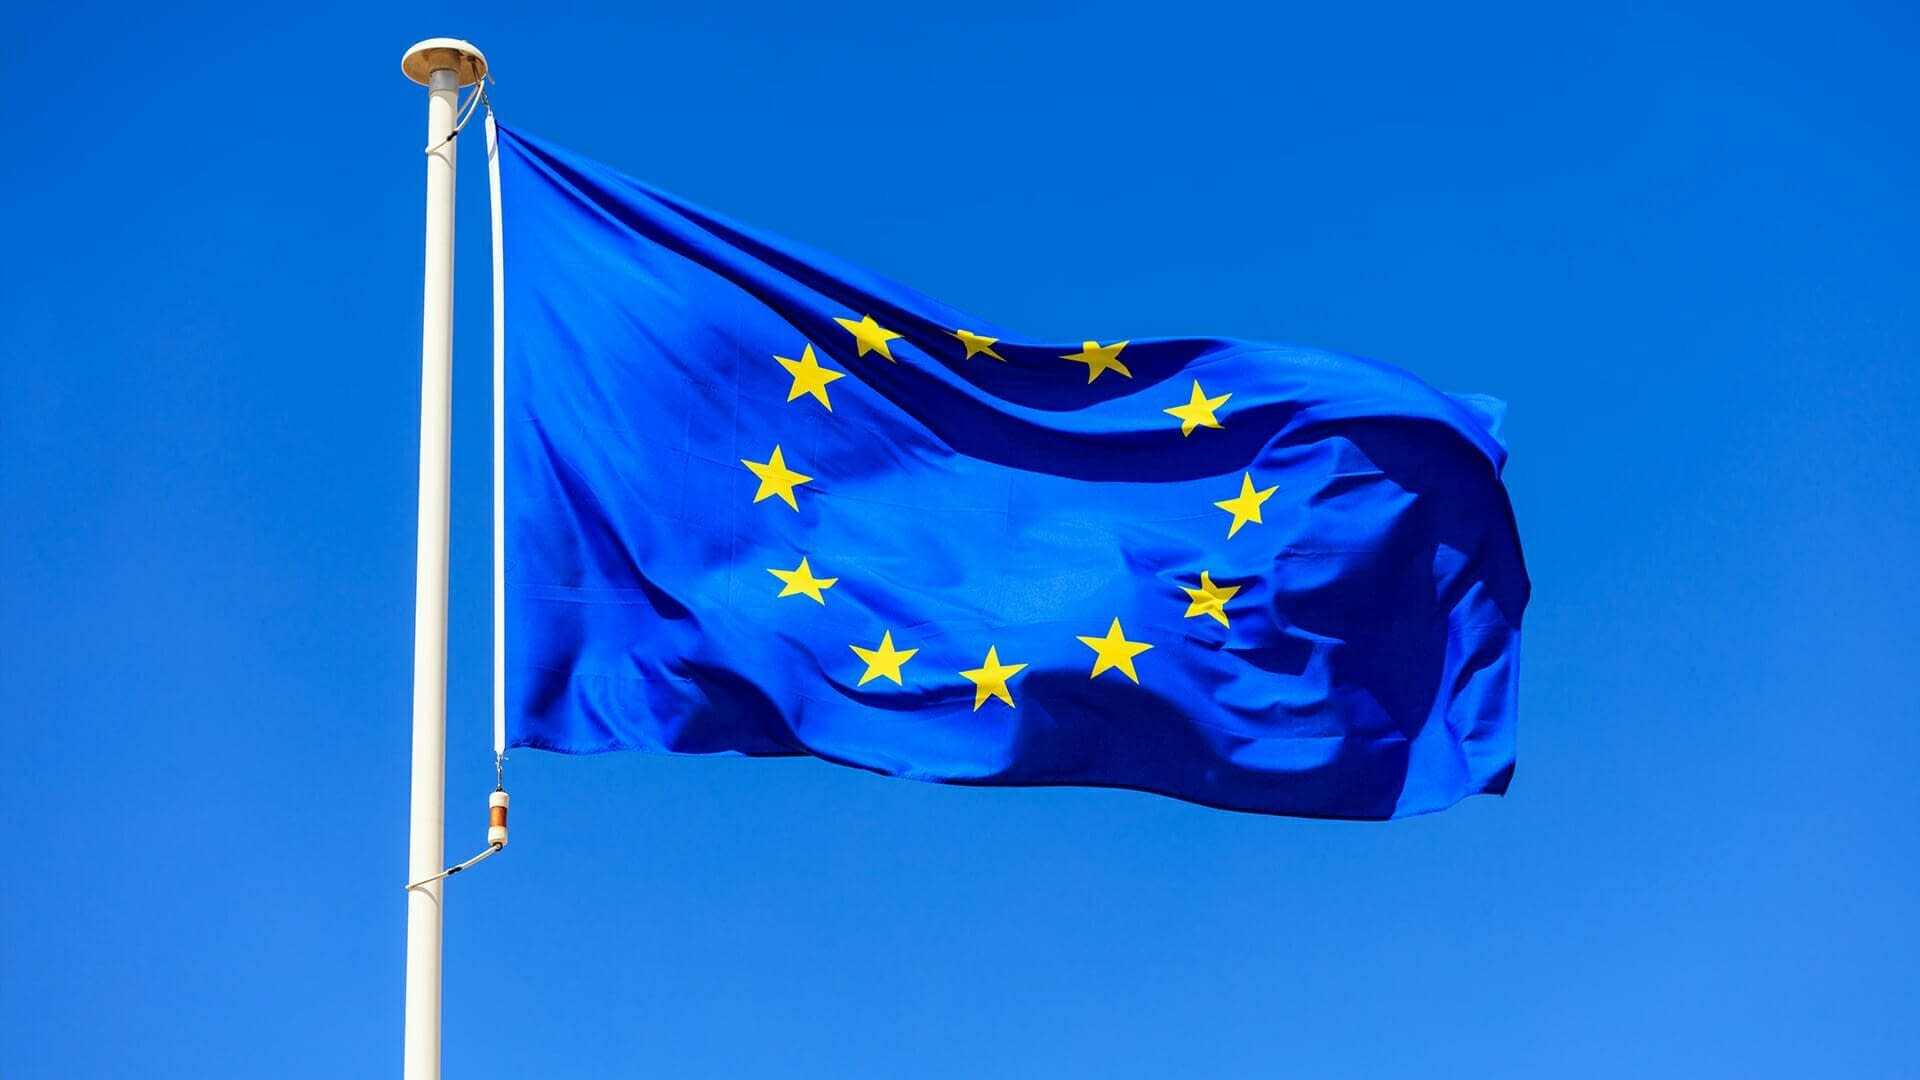 Newly elected European Parliament expected to develop greener policy